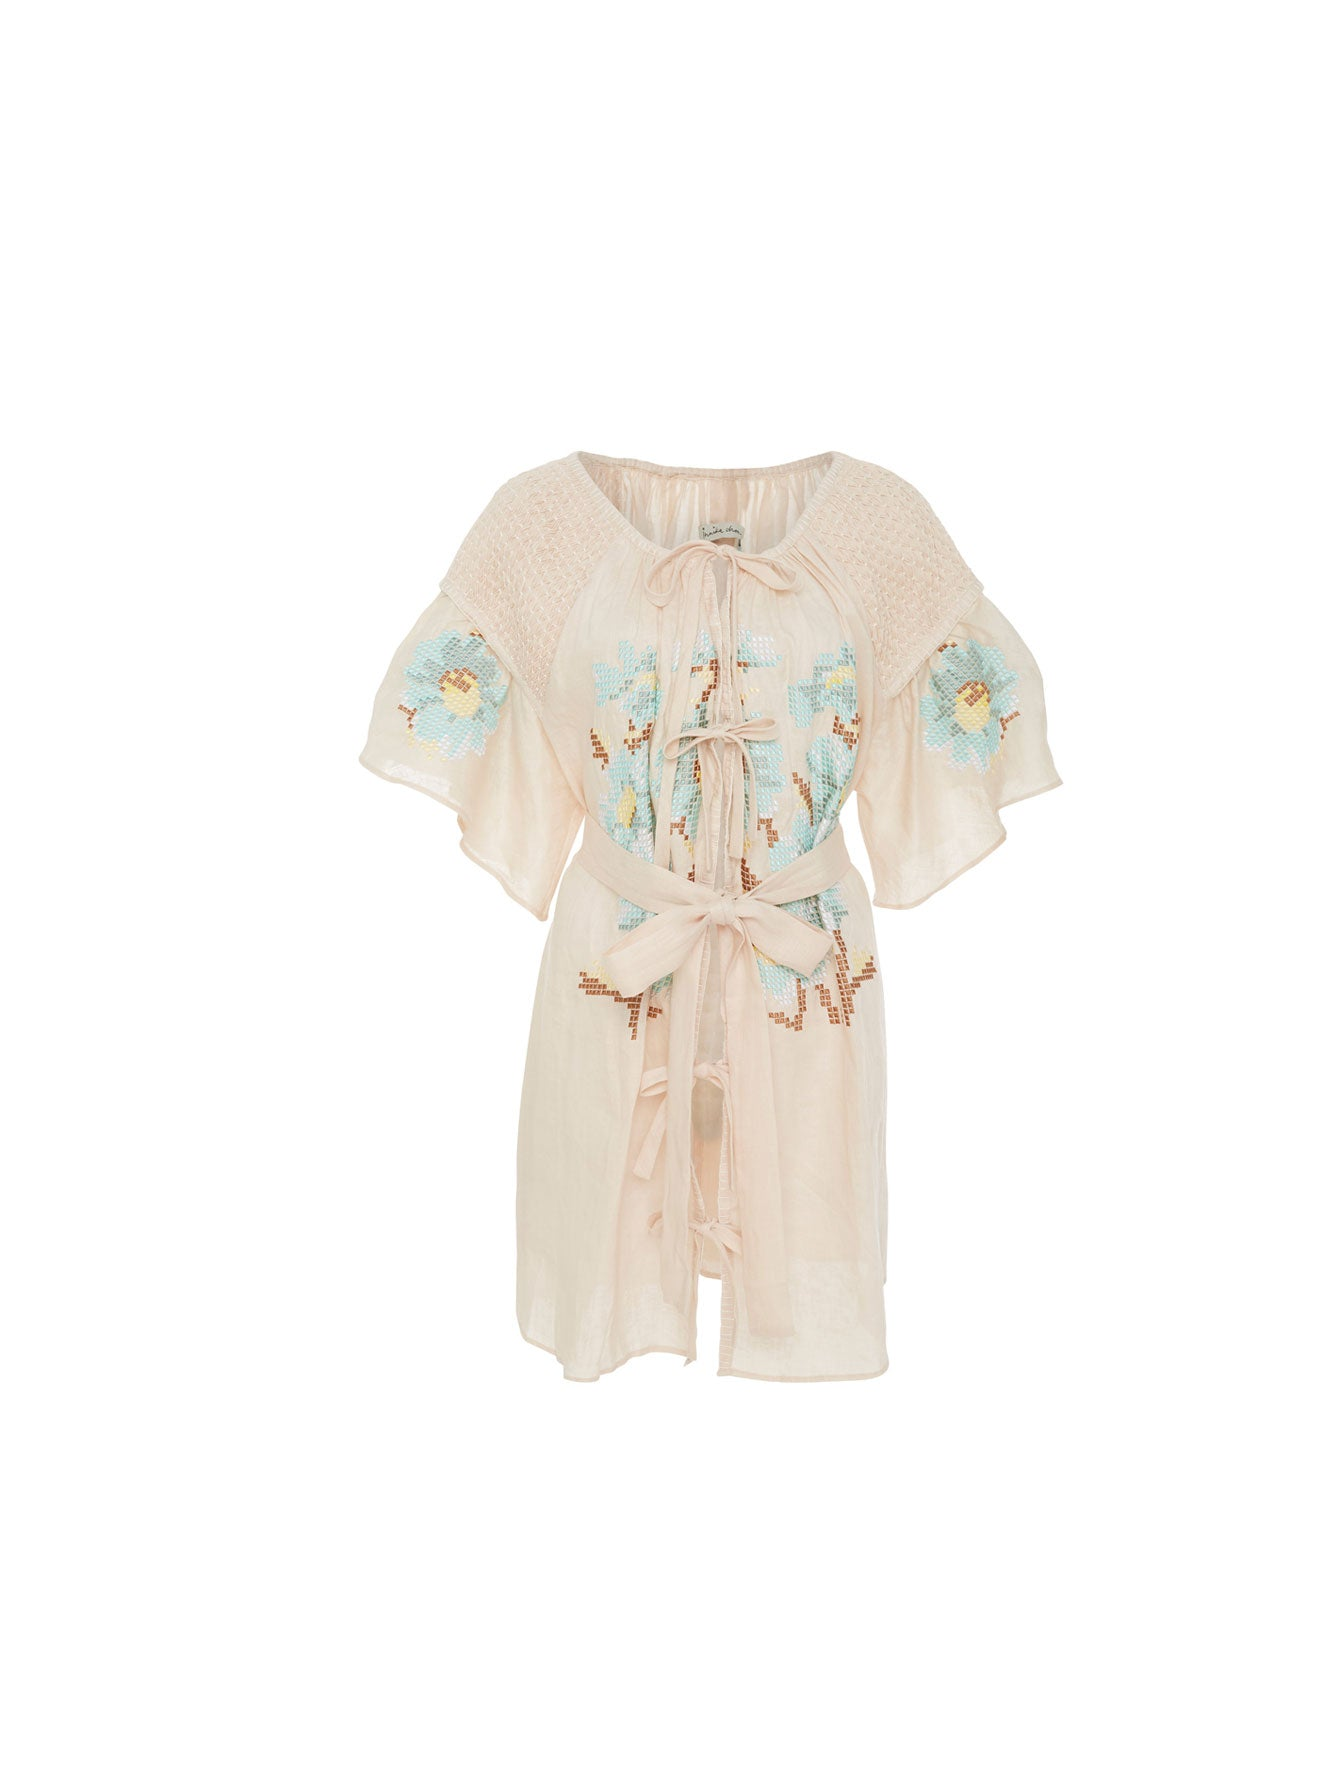 Embroidered Short Smock Dress in Biscuit